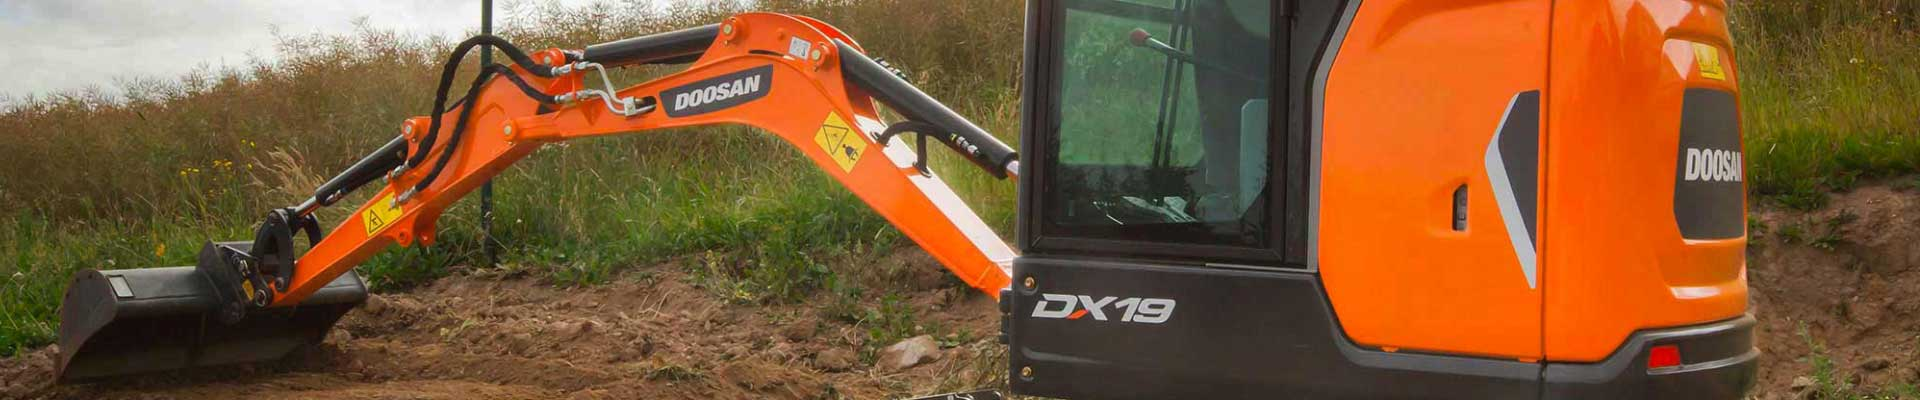 Mini pelle Doosan DX19